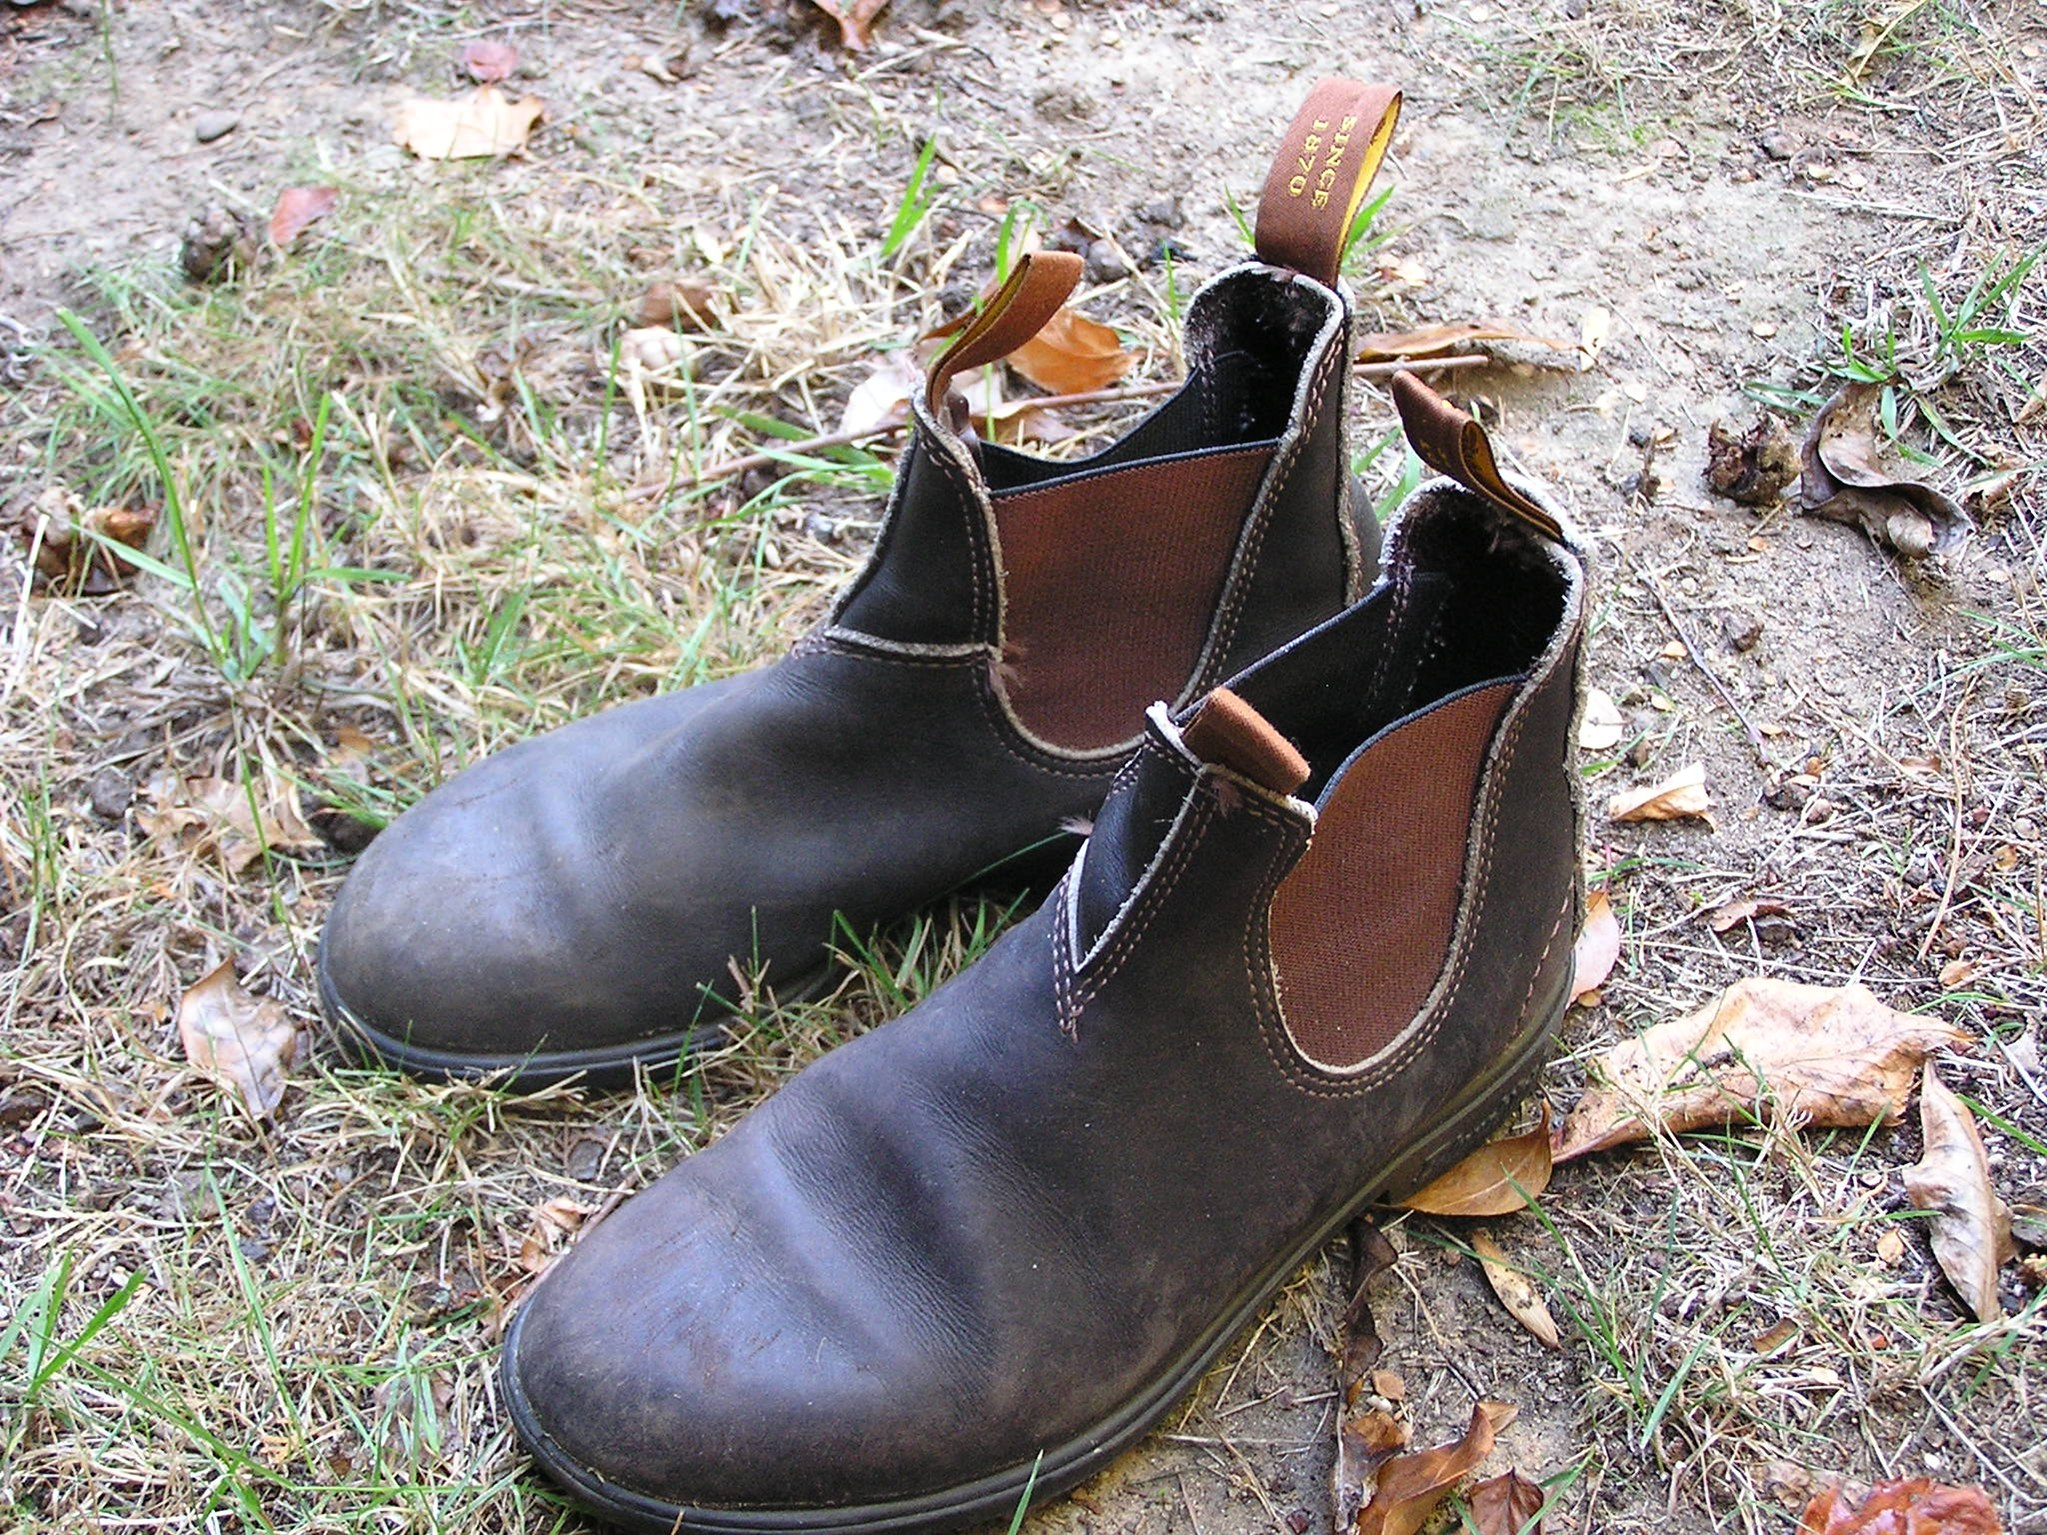 Australian work boot - The complete information and online sale with free  shipping. Order and buy now for the lowest price in the best online store! 2adf67506